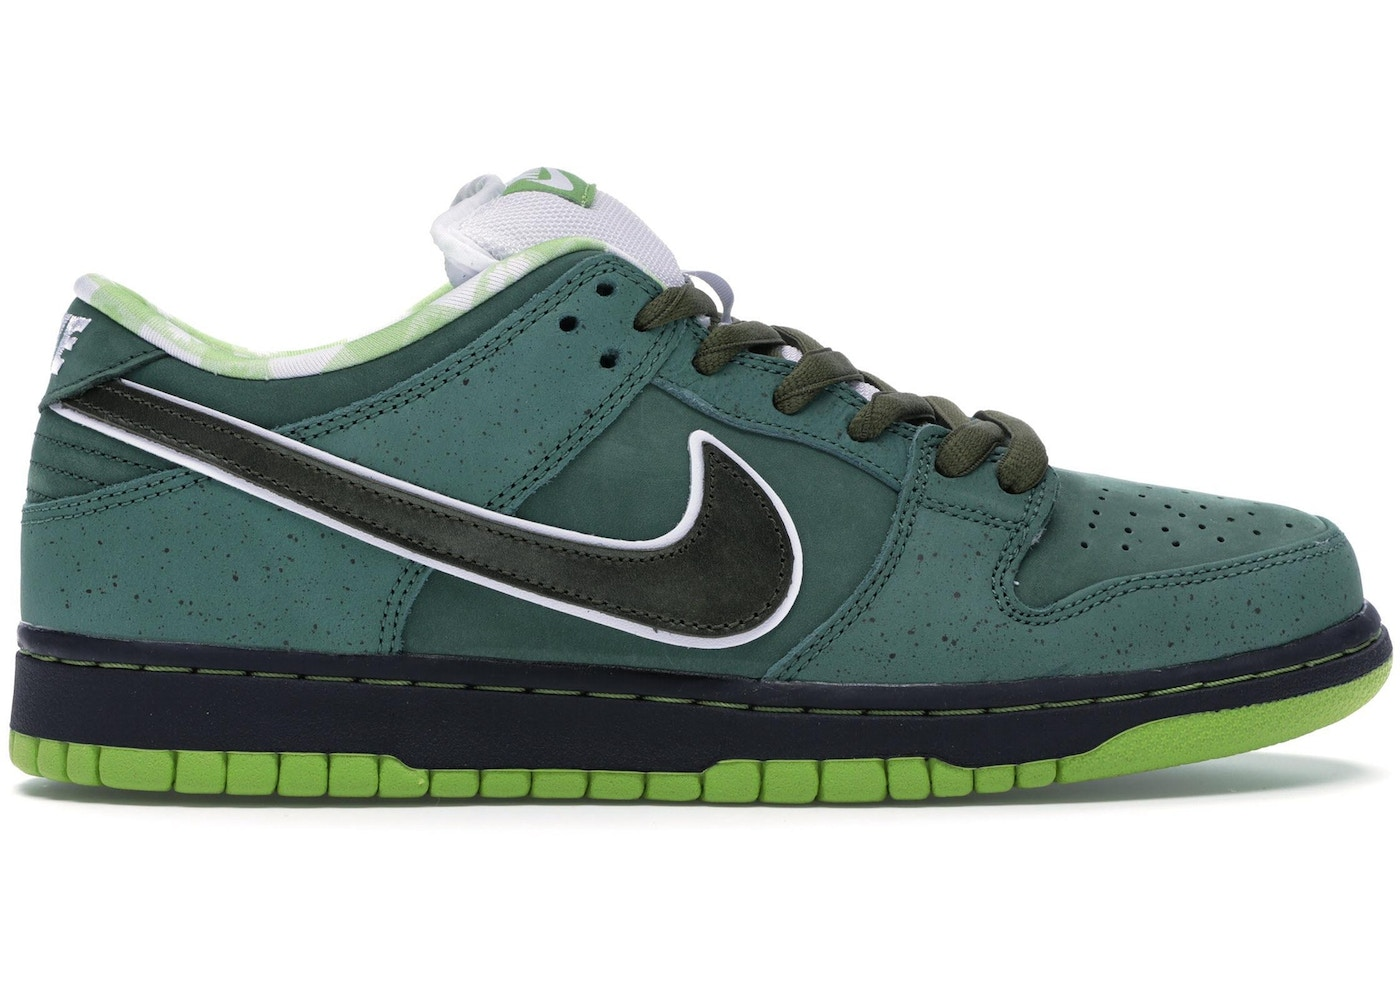 0cc34953 Nike SB Dunk Low Concepts Green Lobster (Special Box) - BV1310-337